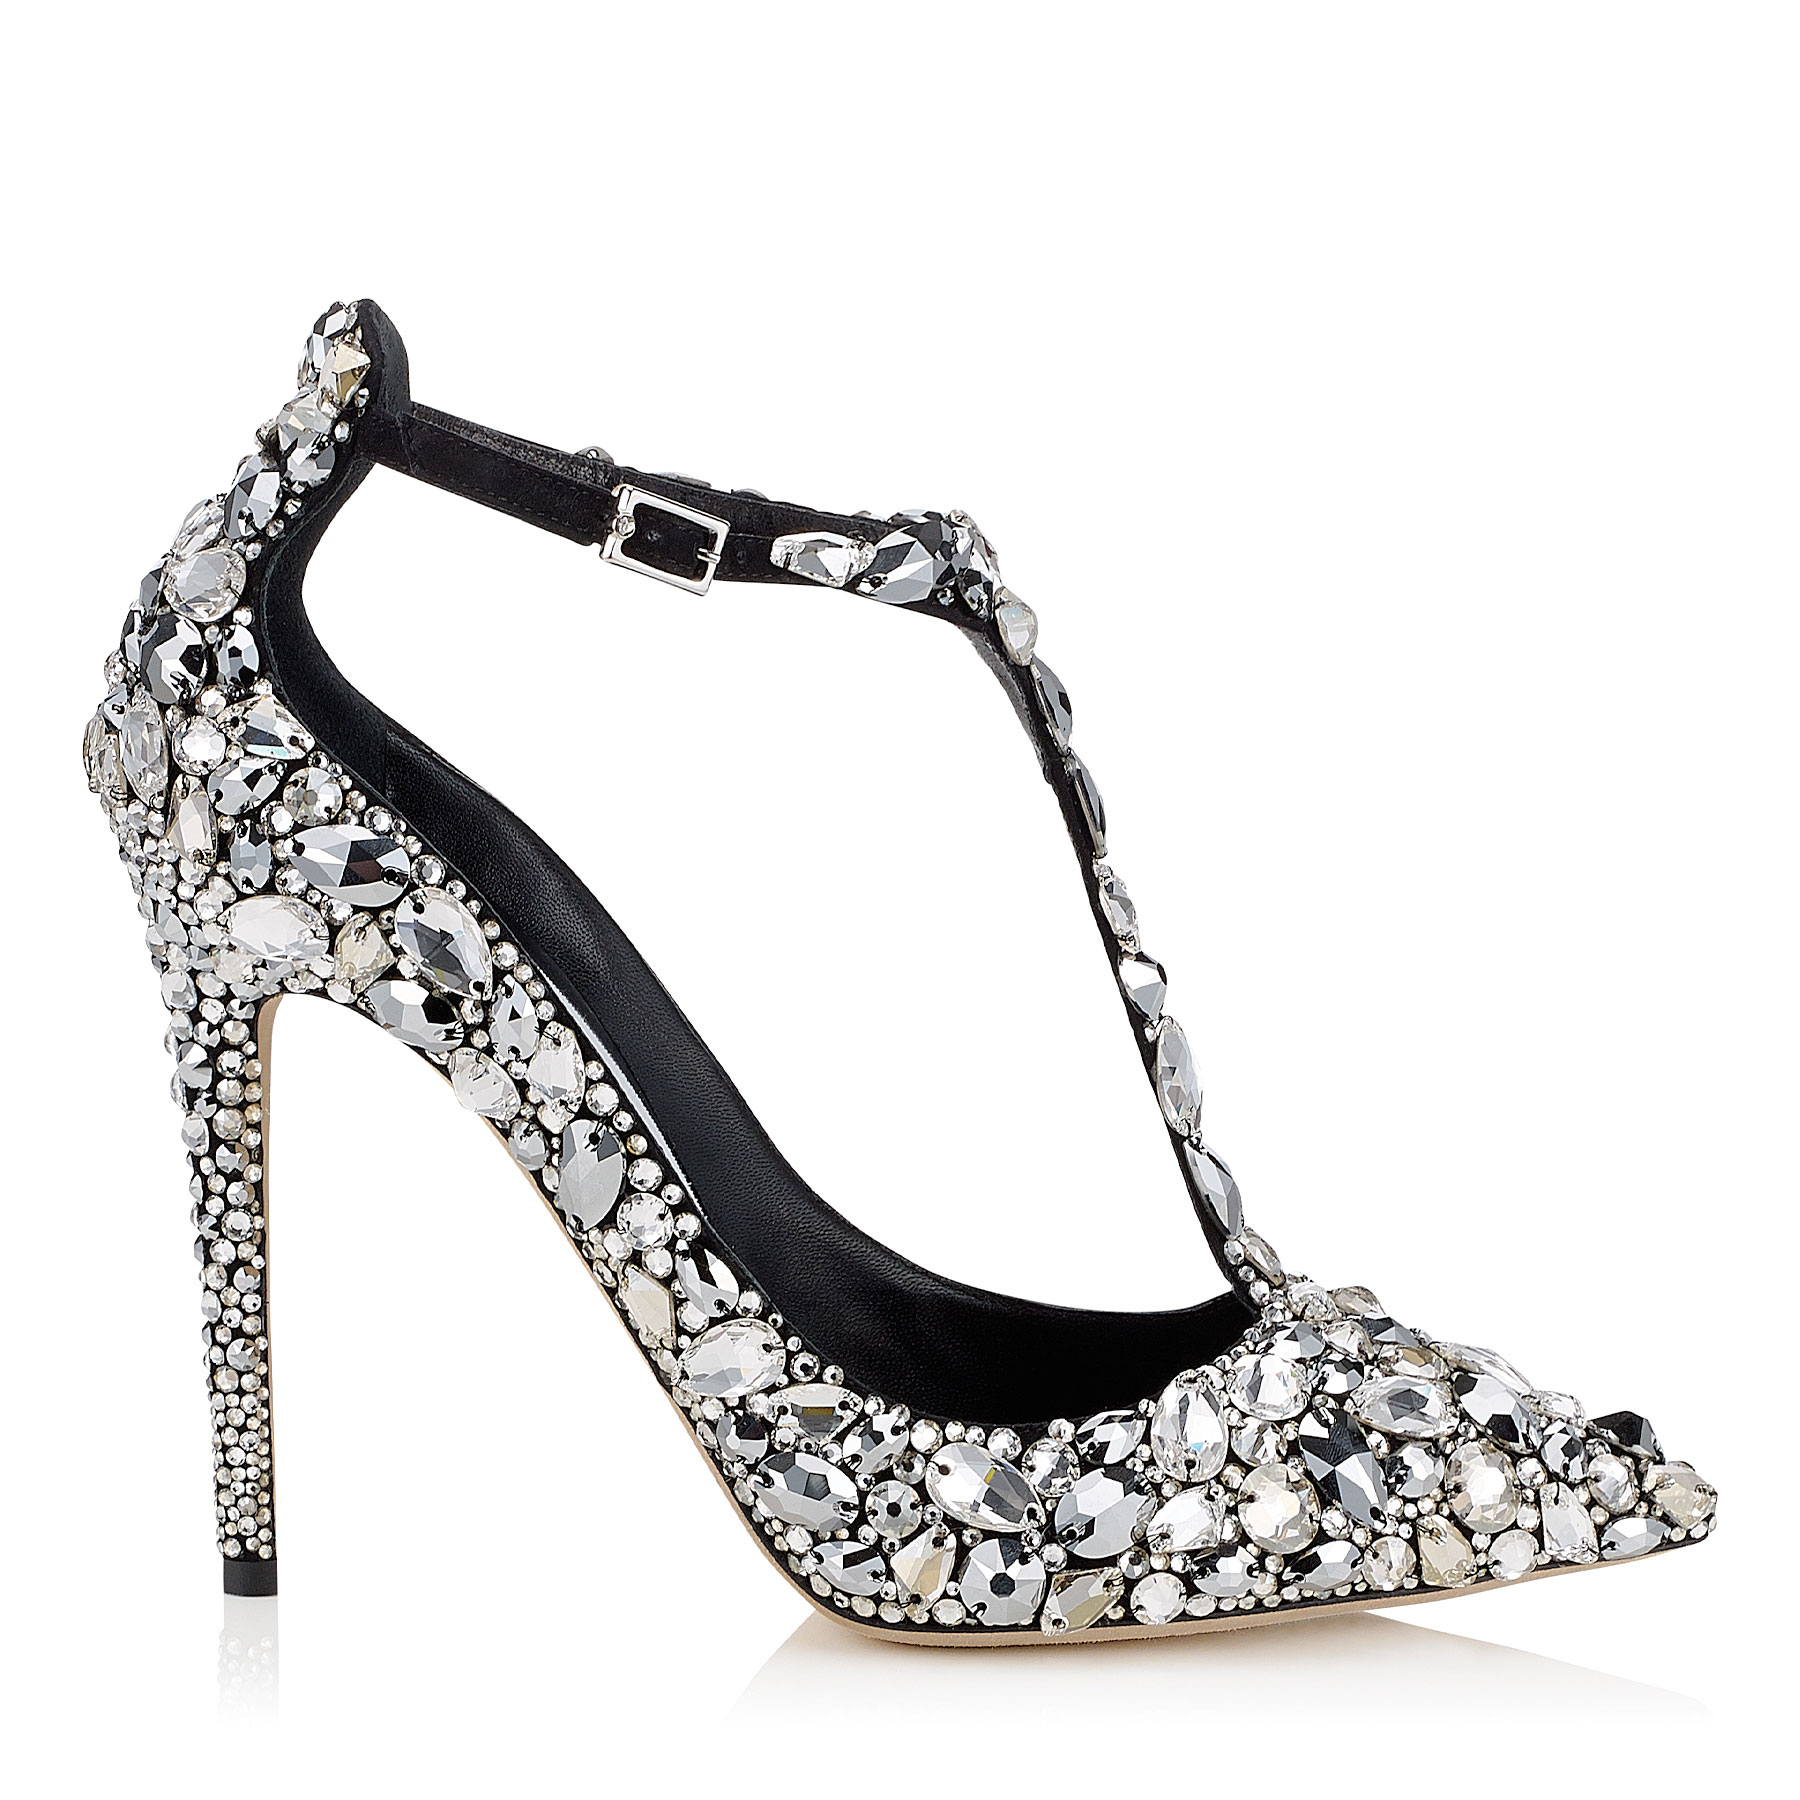 STORM 110 Black Suede, Crystal Covered Pointy Toe Pumps